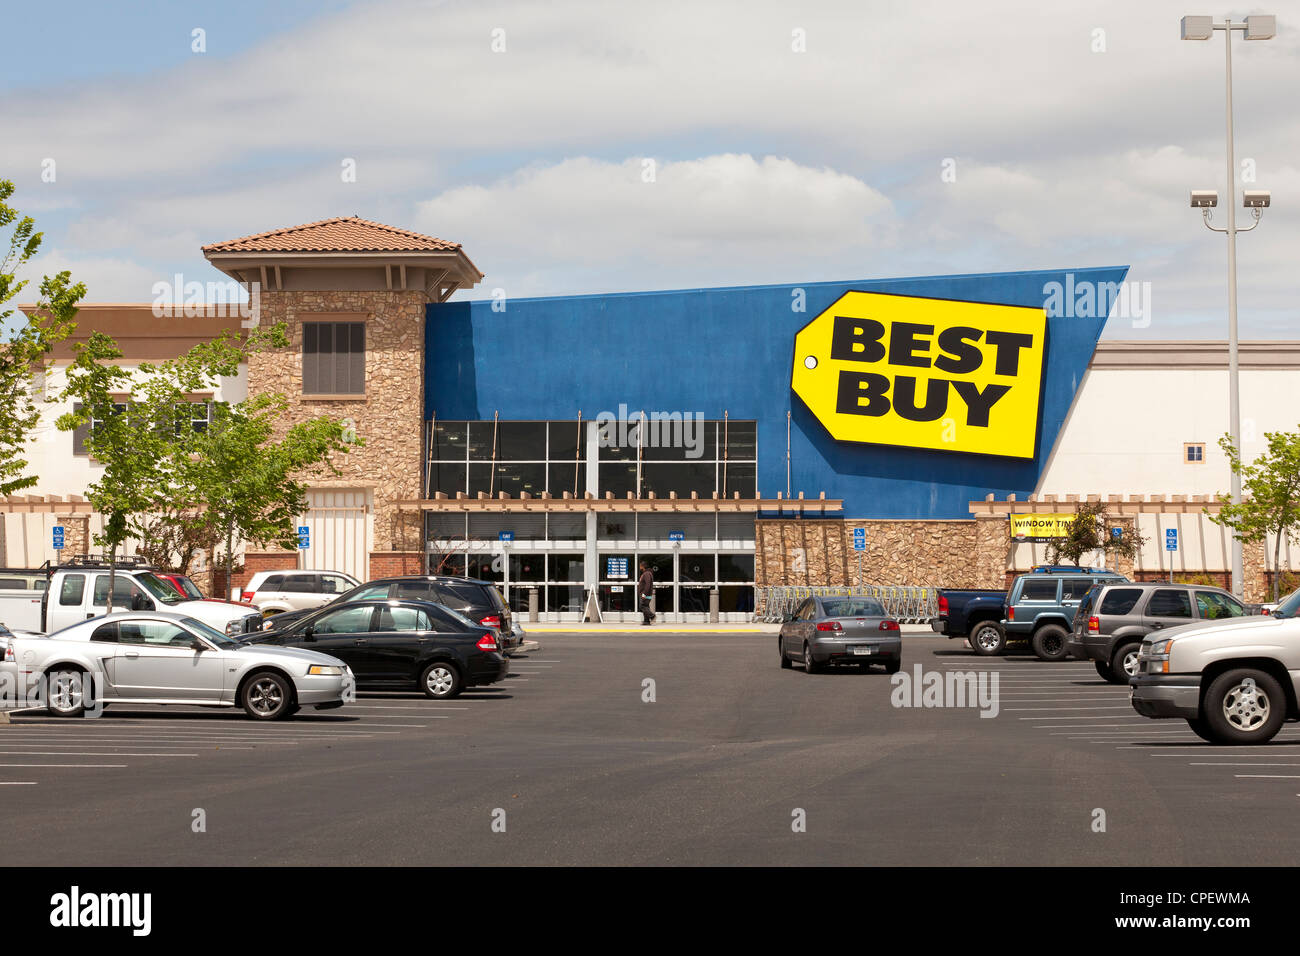 Bust Buy storefront - USA - Stock Image